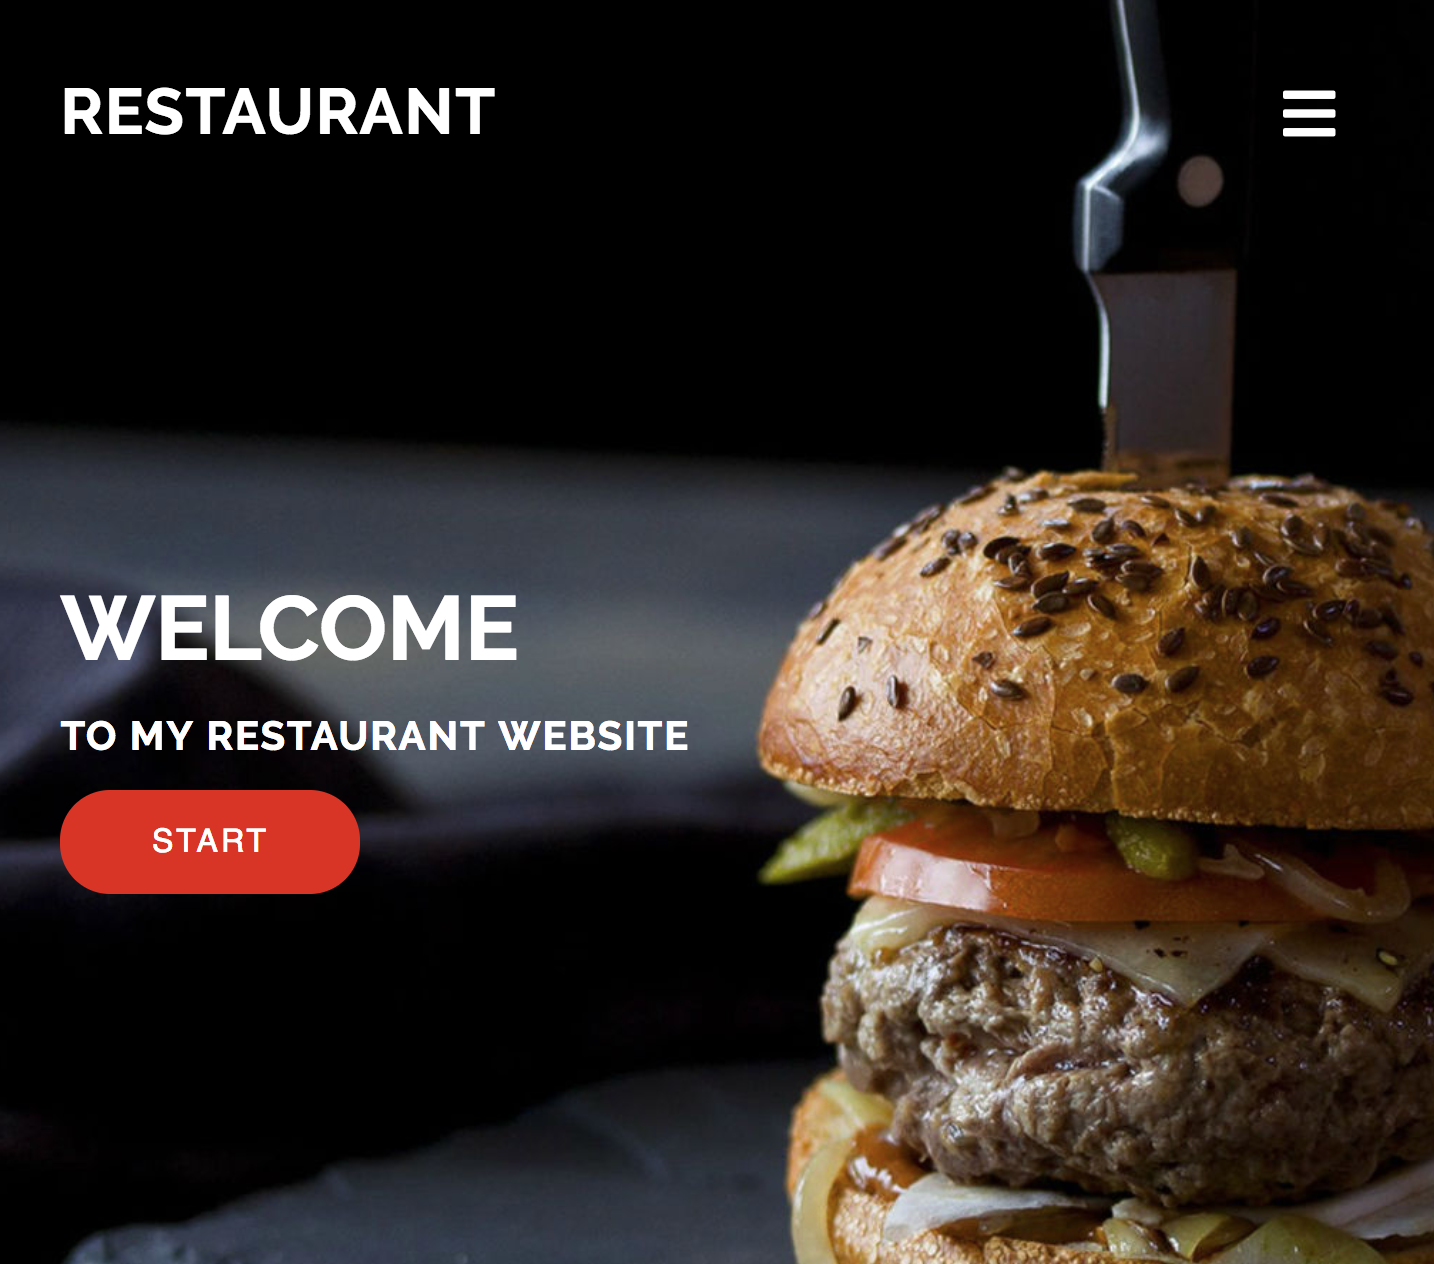 screenshot of website home page, with an image of a hamburger